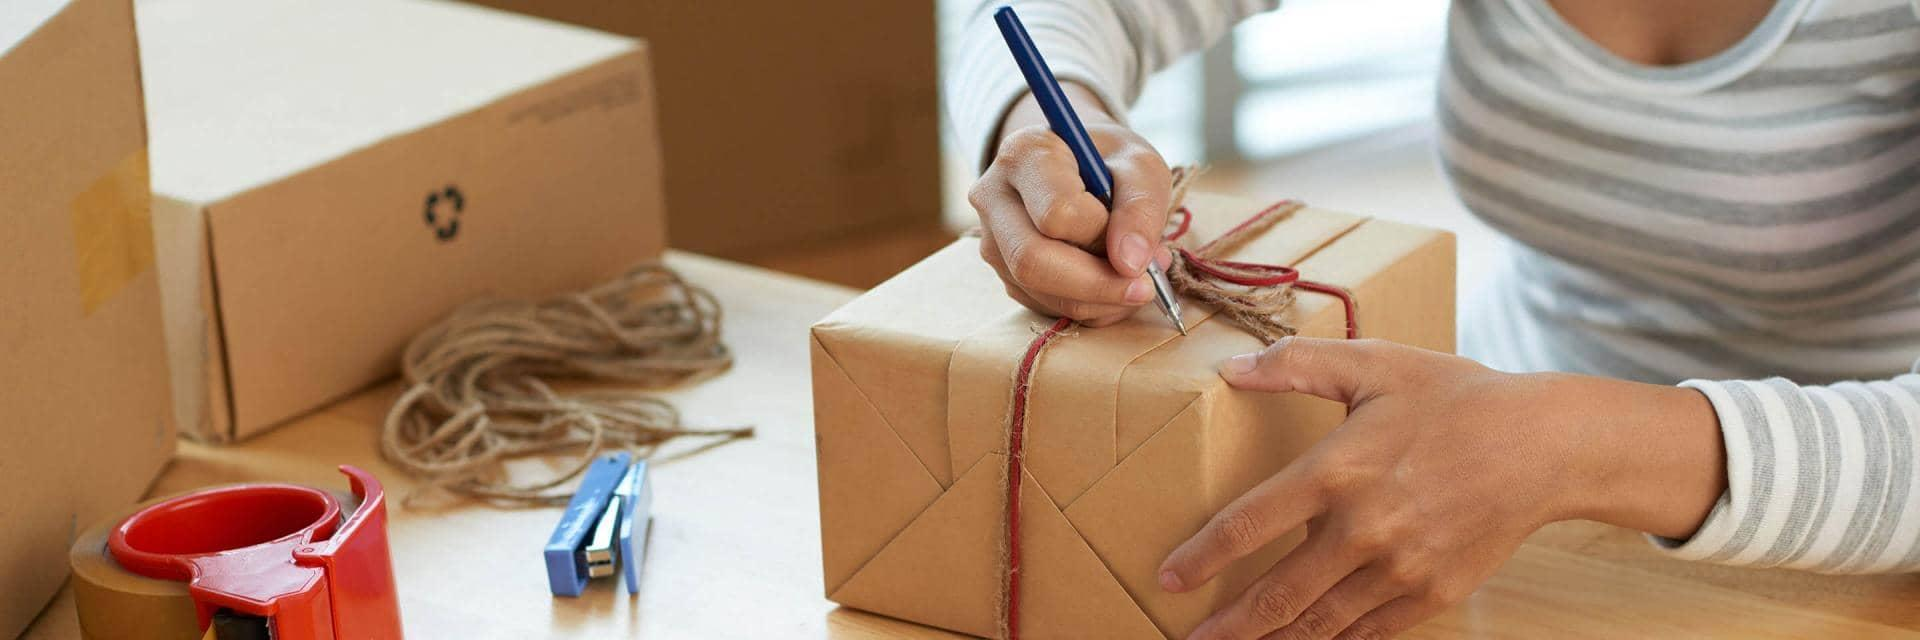 A woman writes an address on a hand wrapped brown paper parcel tied with string